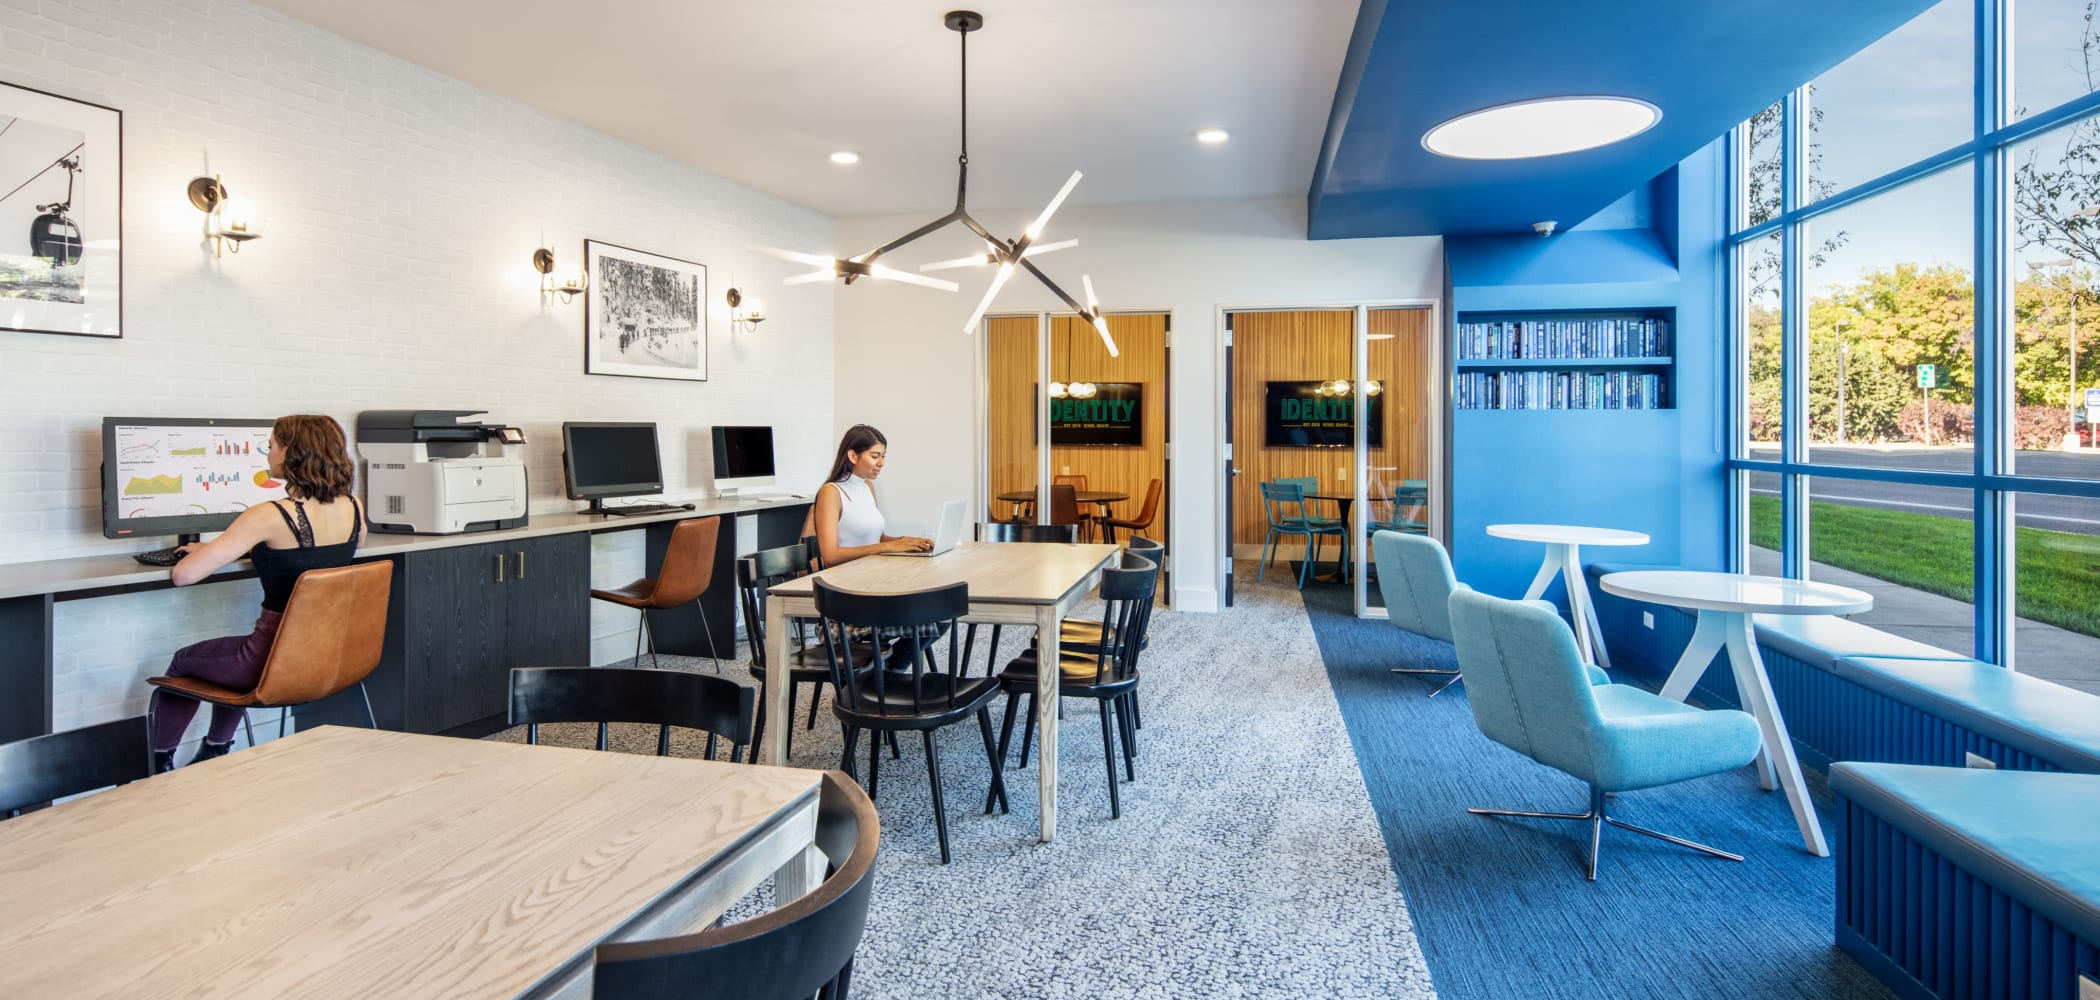 Onsite study space at IDENTITY Boise in Boise, Idaho